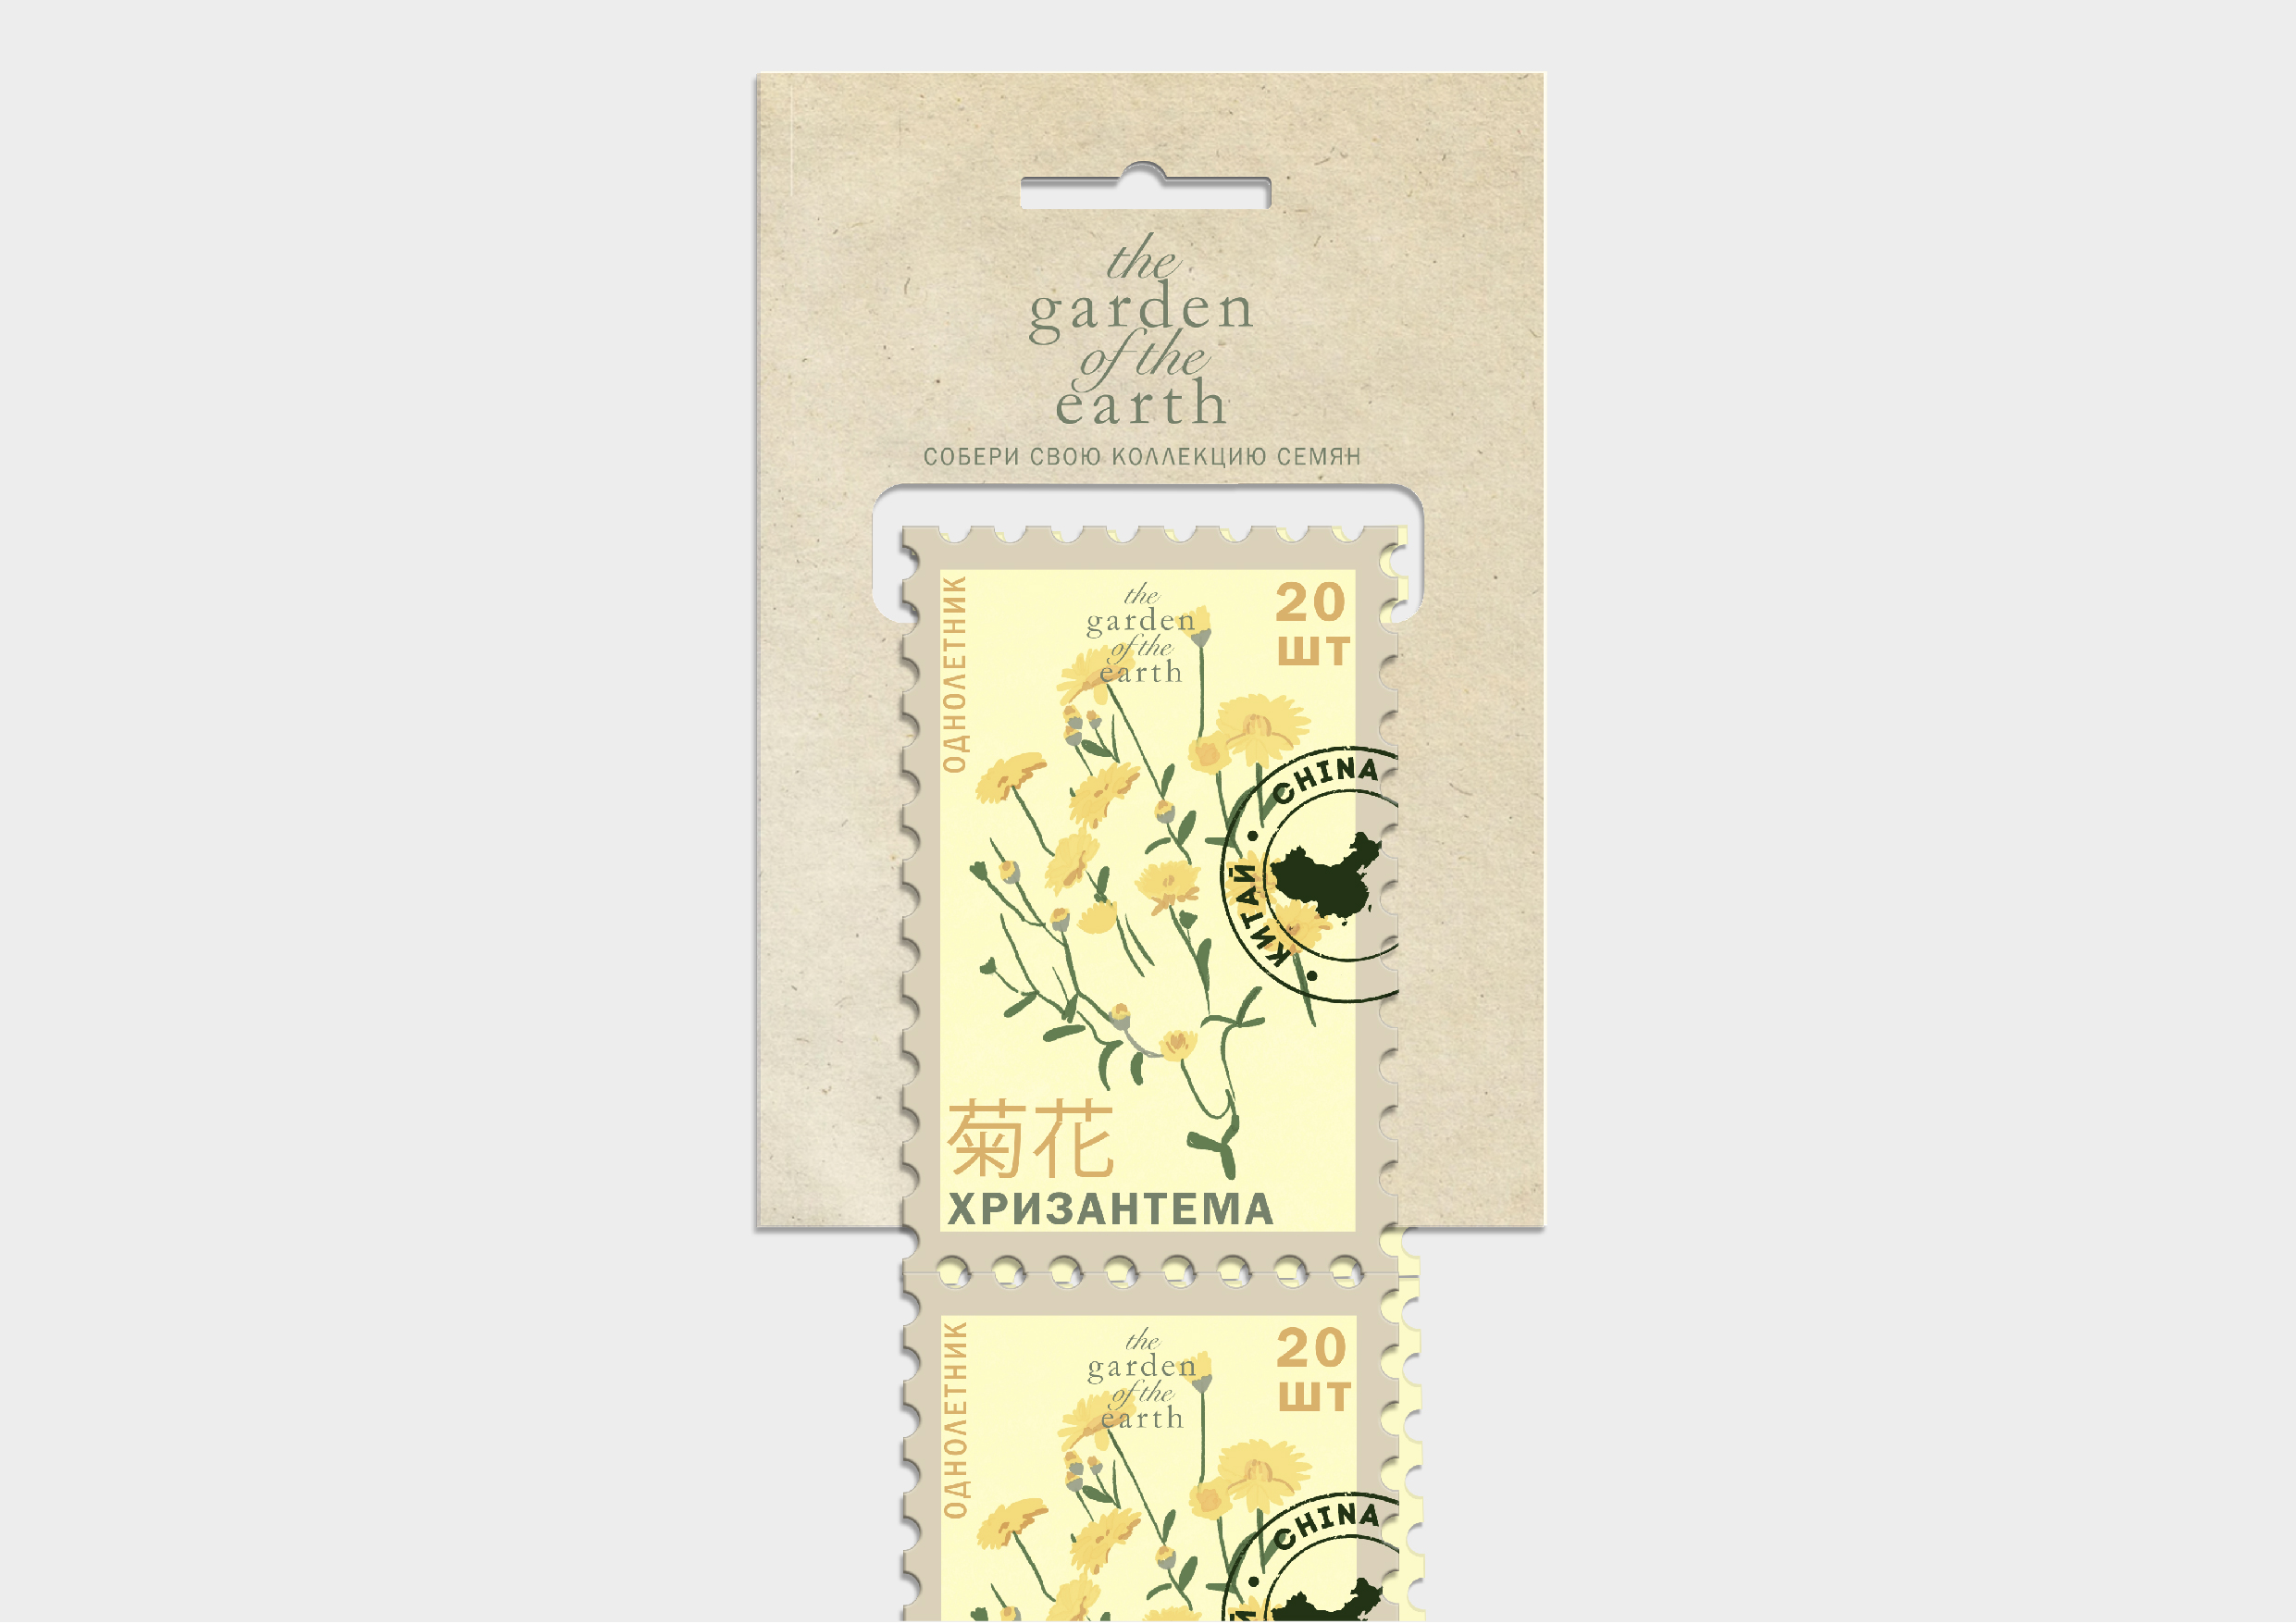 Student Design Concept for Garden of the Earth Seed Packaging